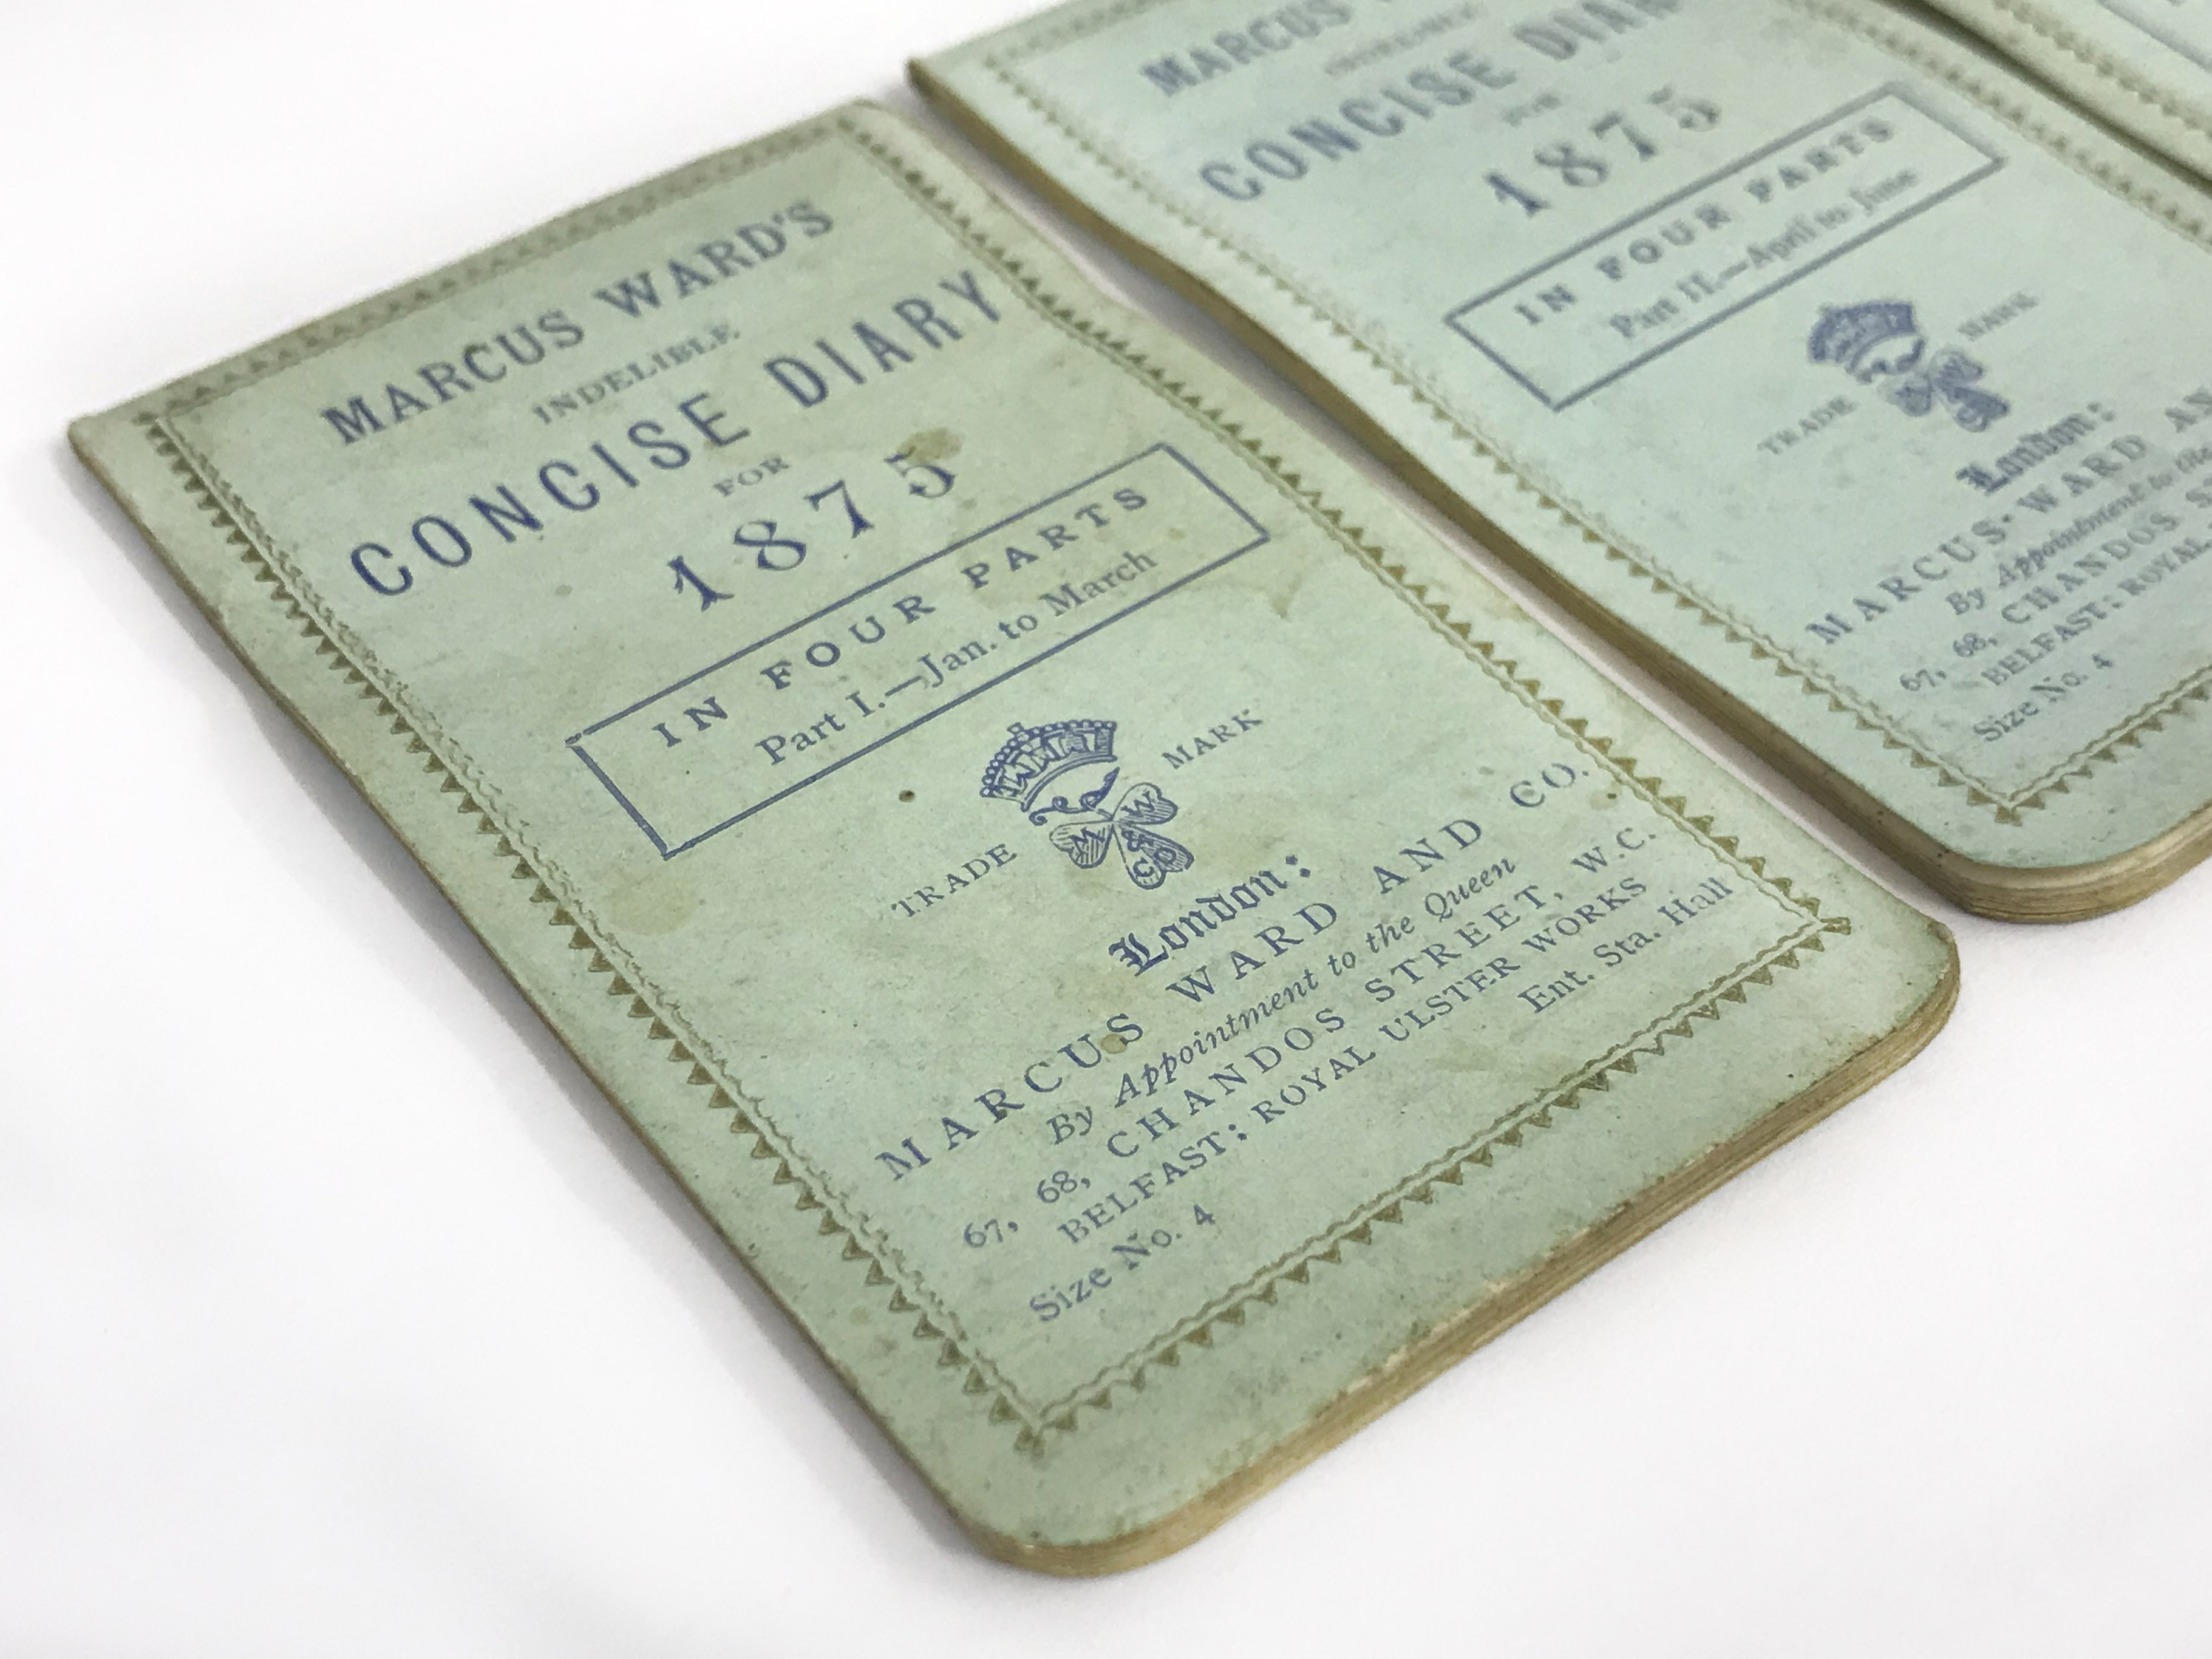 Lot 23 - MARCUS WARD'S IMPROVED INDELIBLE CONCISE DIARY IN FOUR PARTS FOR 1875